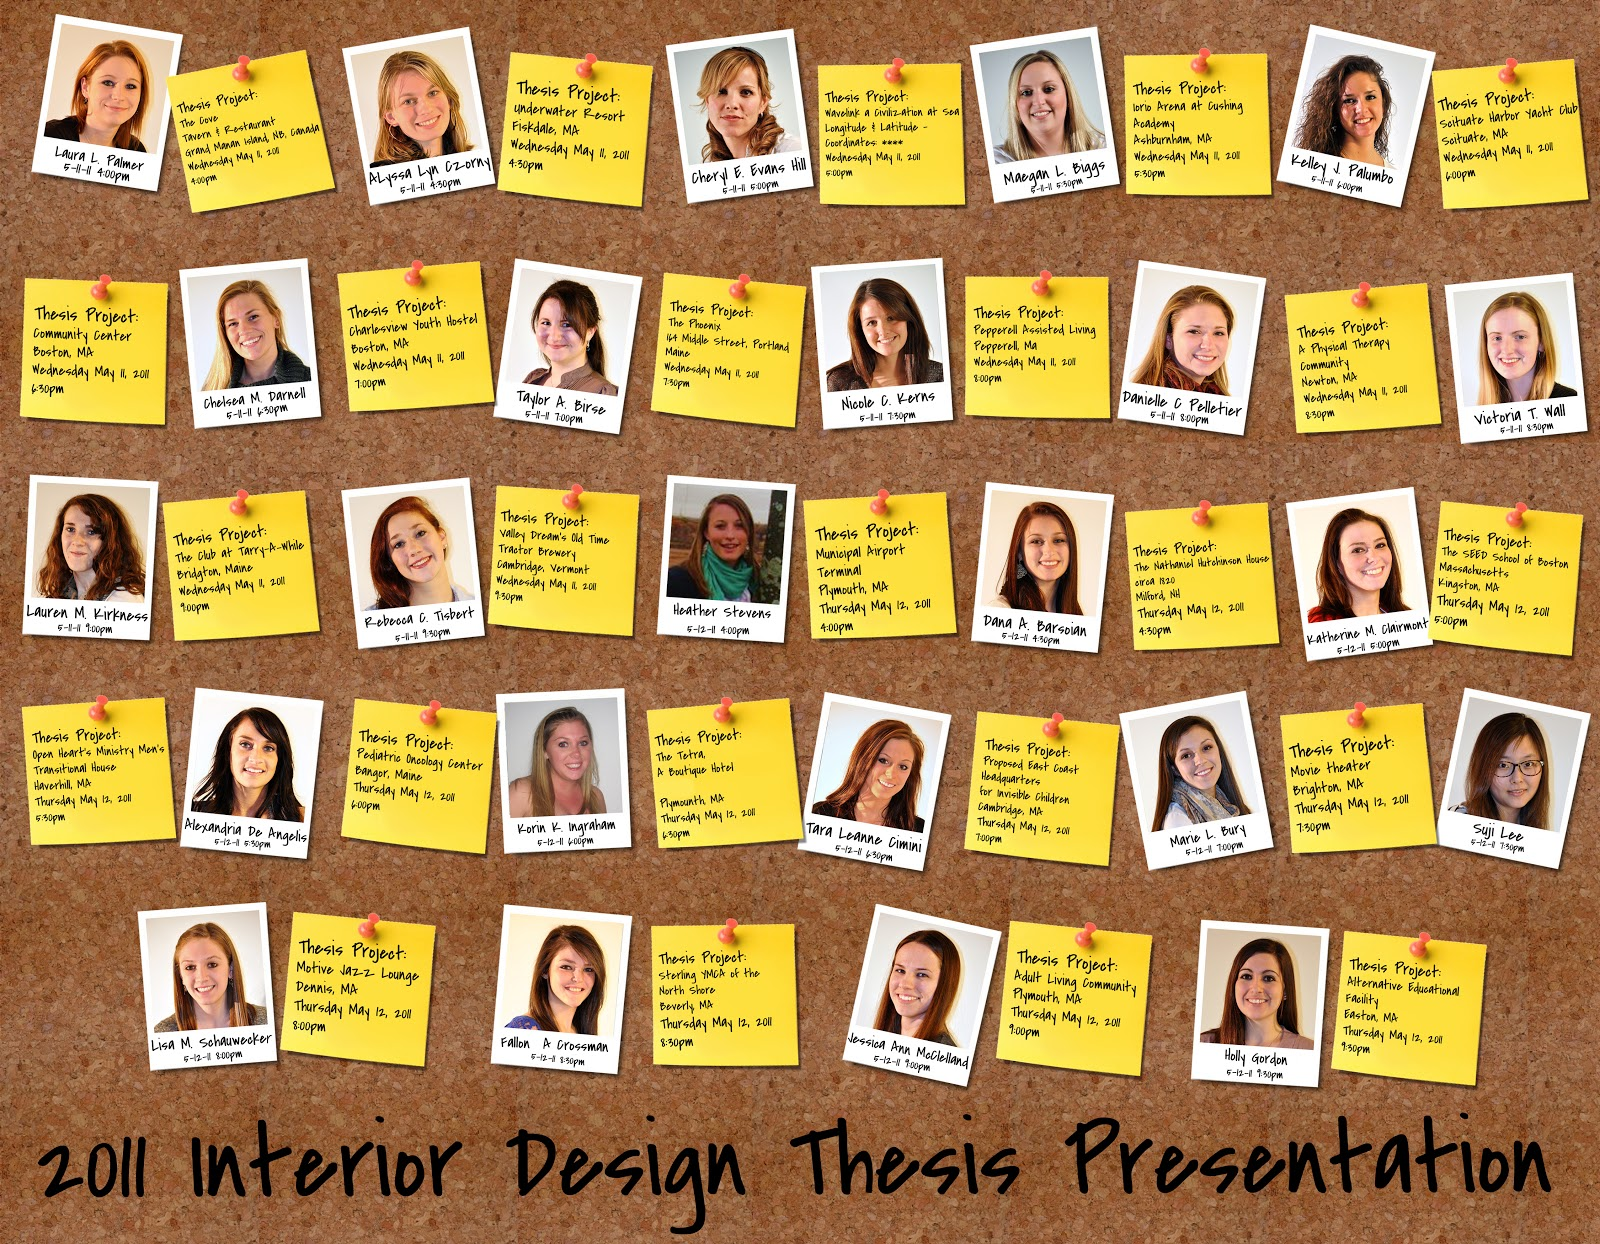 interior design thesis presentation